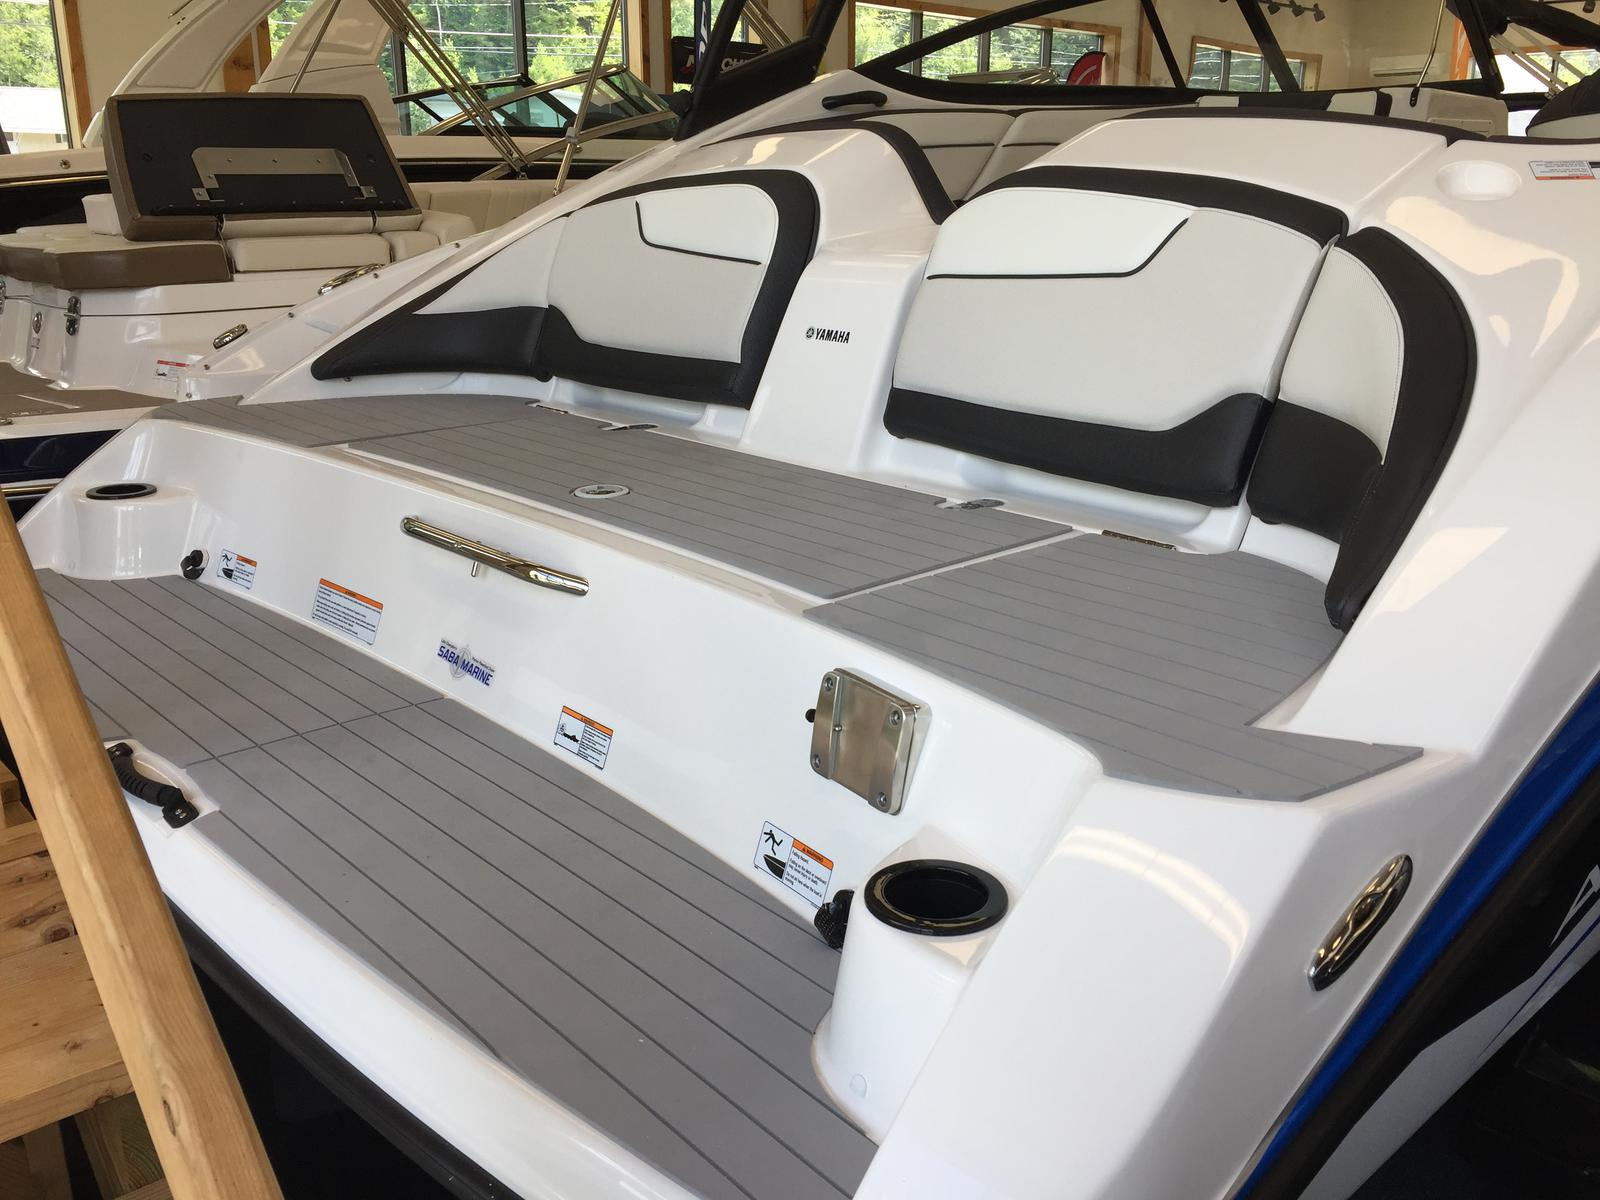 2018 Yamaha AR210 for sale in Colchester, VT  Saba Marine Colchester